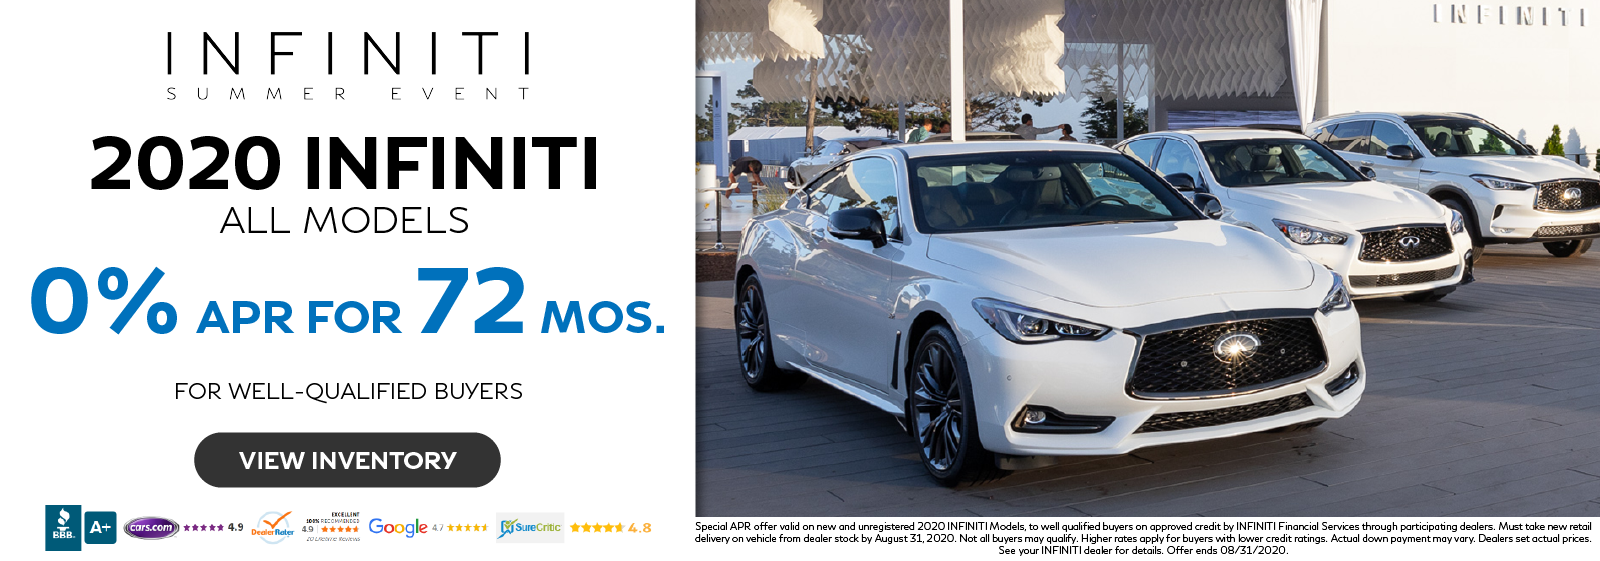 Get 0% APR for up to 72 months on all new 2020 INFINITI Models. Click to view inventory.